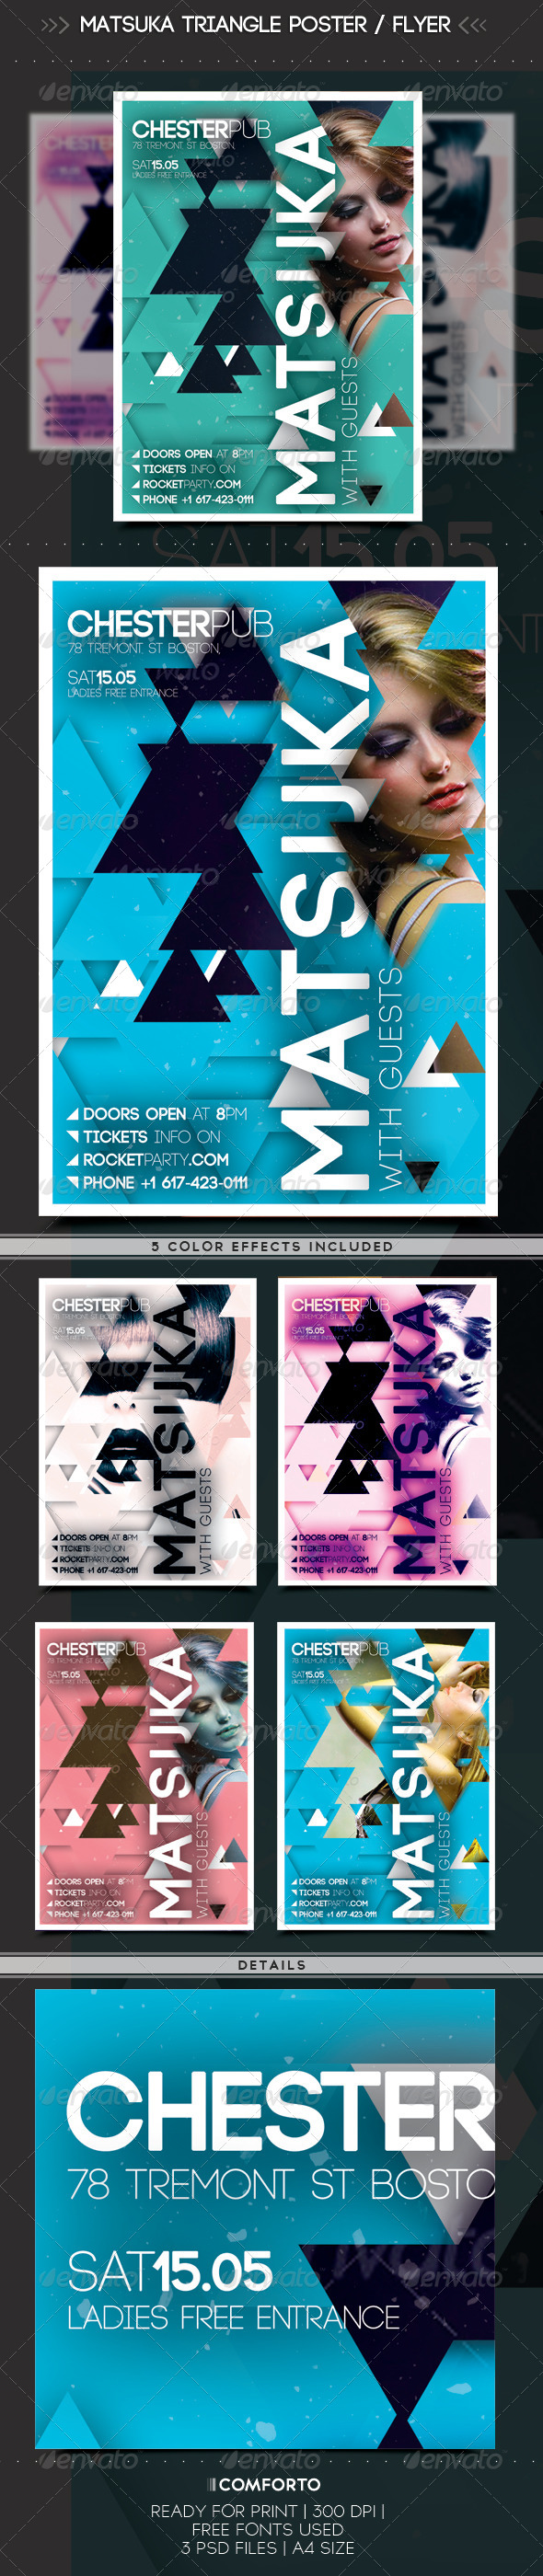 Matsuka Triangle Poster / Flyer - Clubs & Parties Events